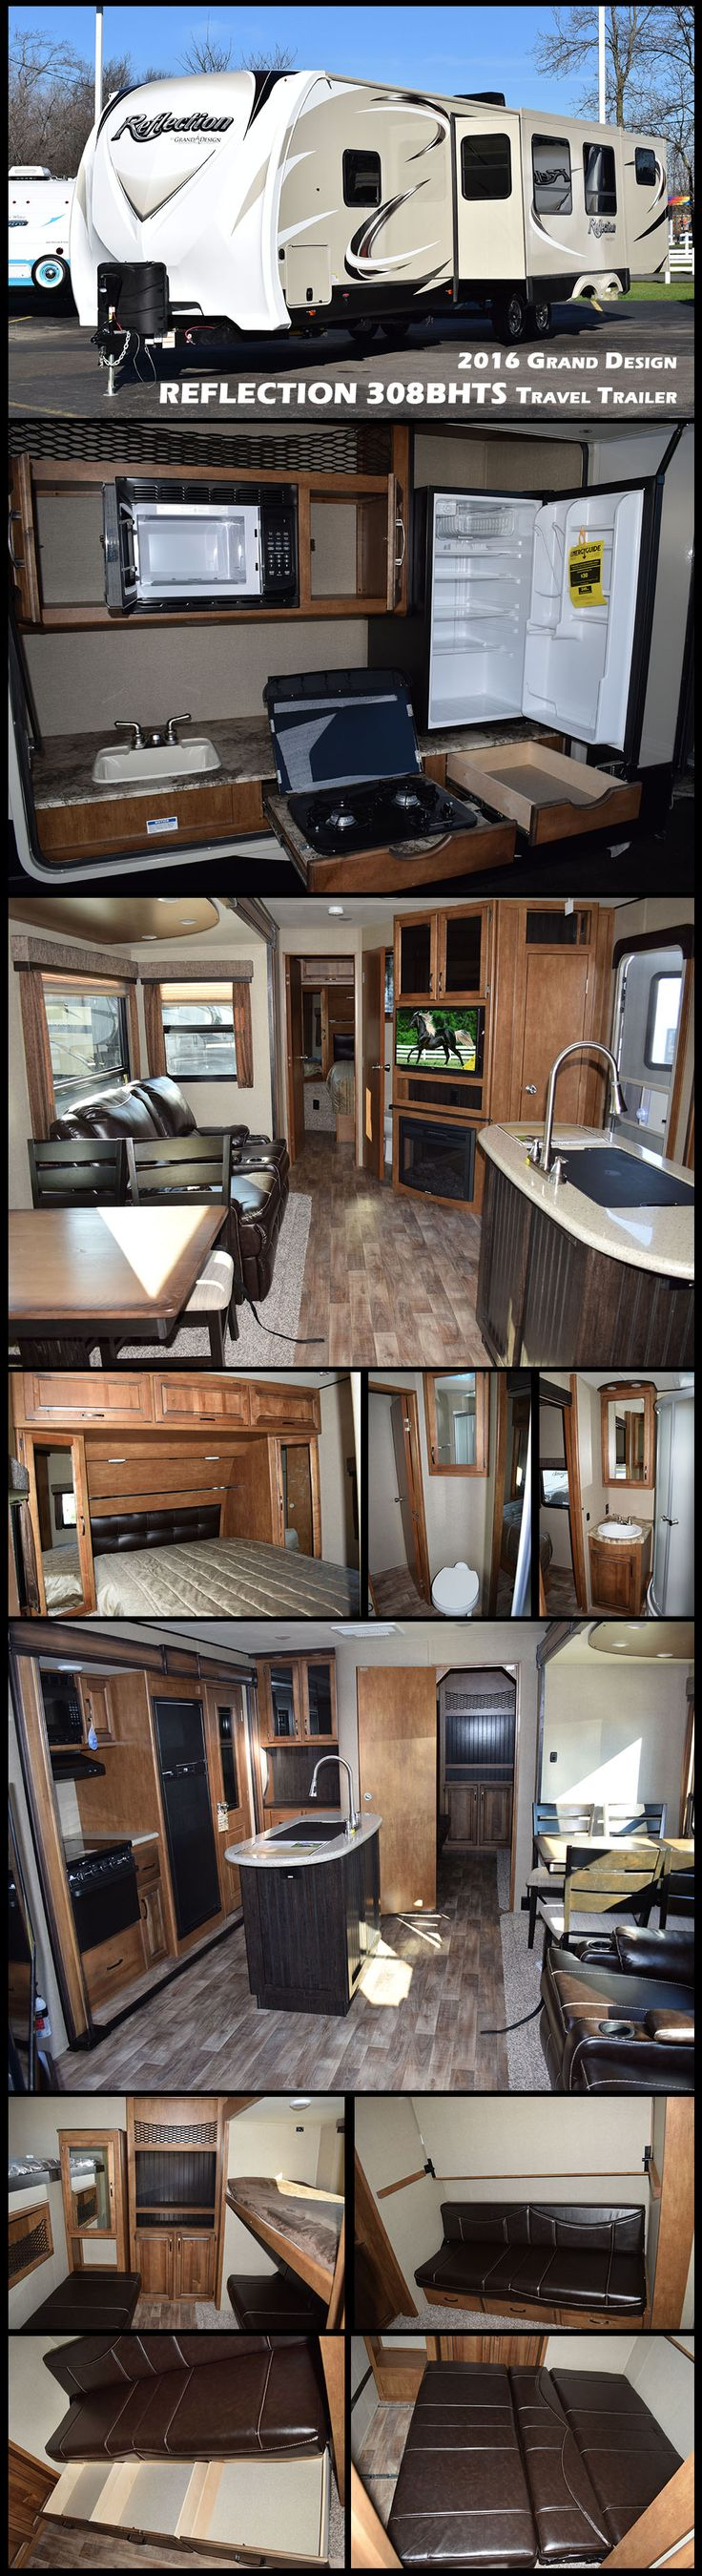 This 2016 Grand Design REFLECTION 308BHTS travel trailer is a great family  camper with triple slides